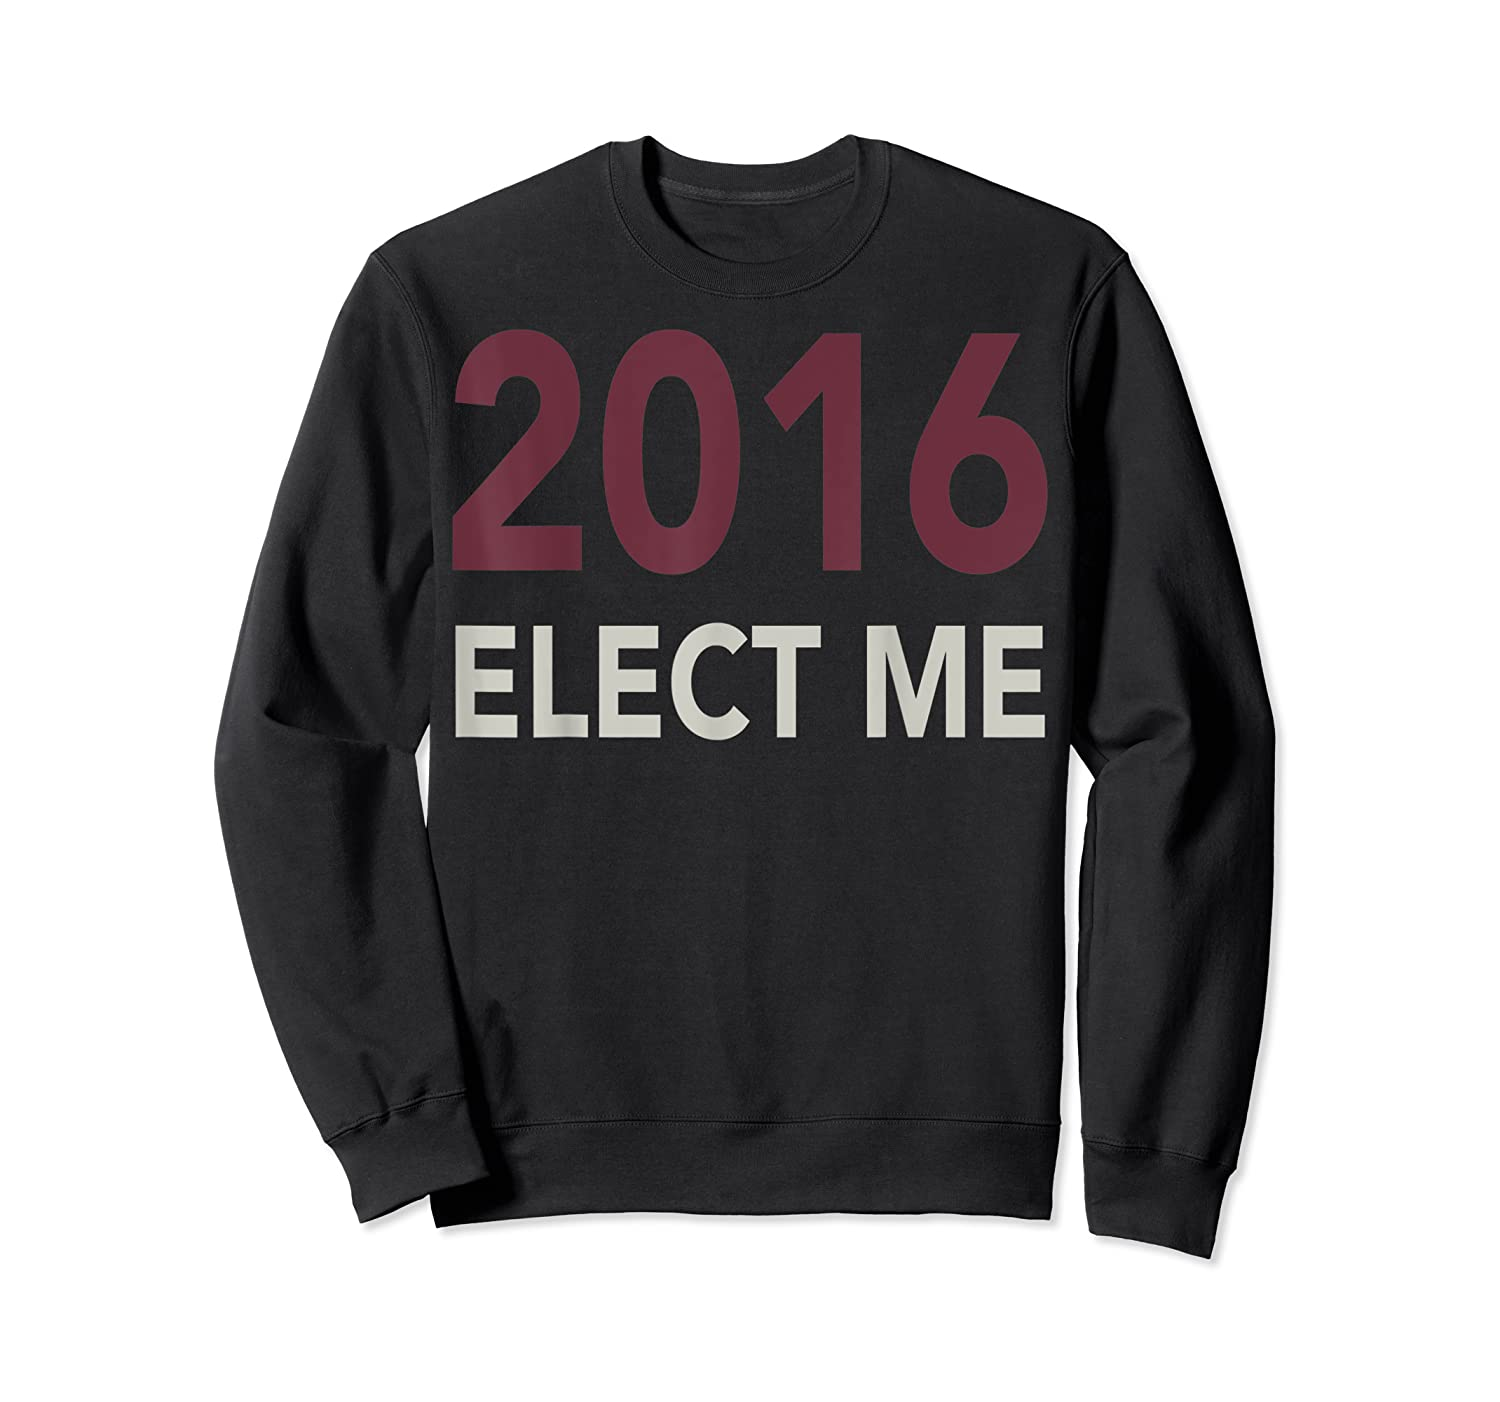 2016 Elect Me Voting Election Day Graphic T Shirt Crewneck Sweater